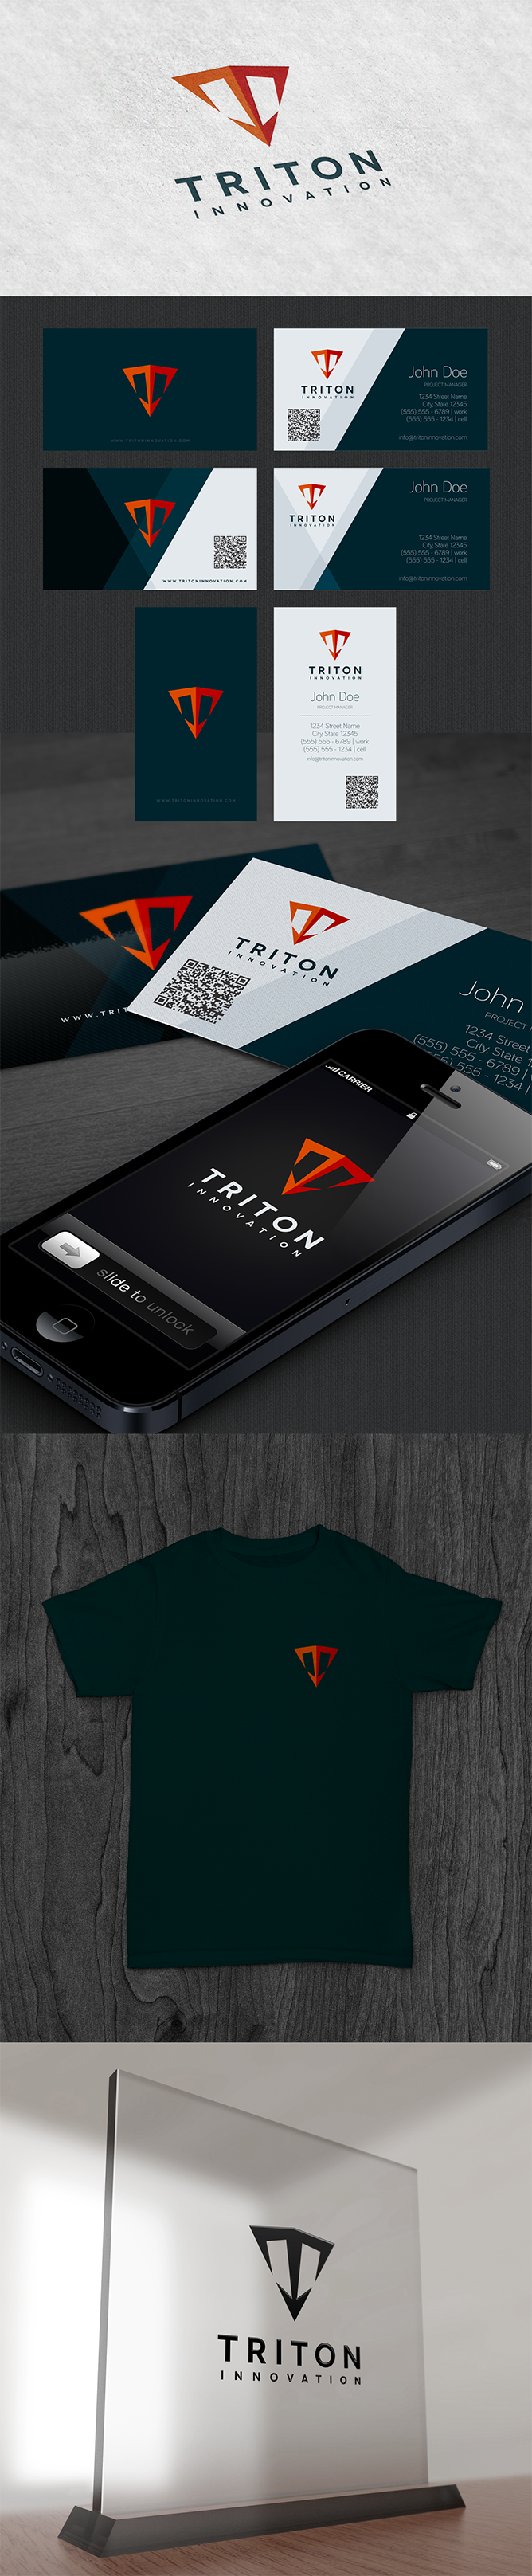 Help Triton Innovation Inc. design our first logo and business card!